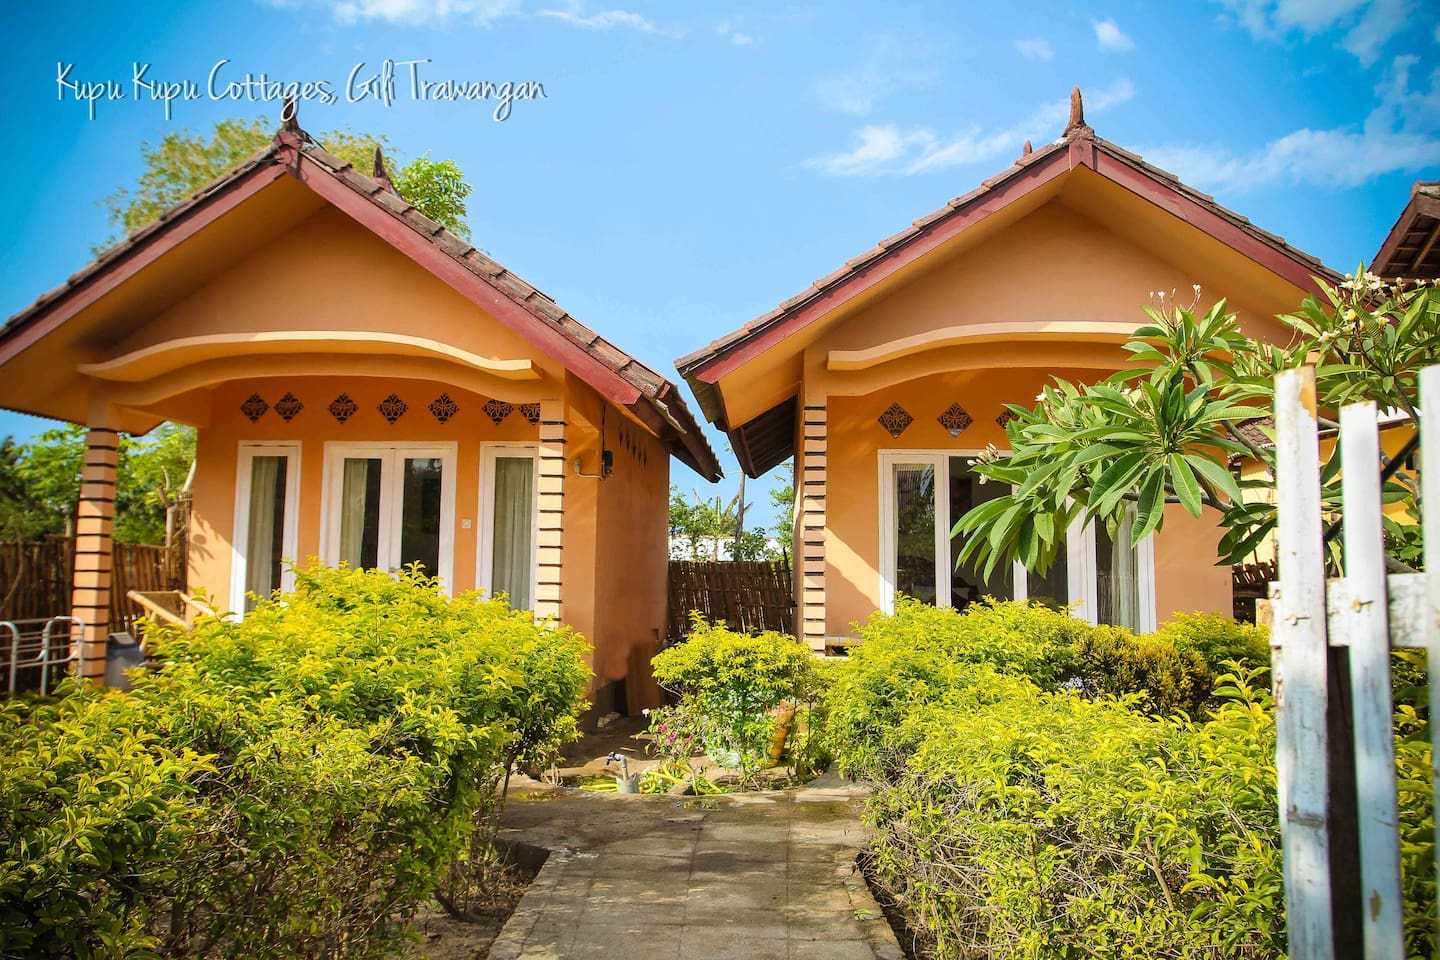 Welcome to Kupu Kupu Cottages on the tropical island of Gili Trawangan.